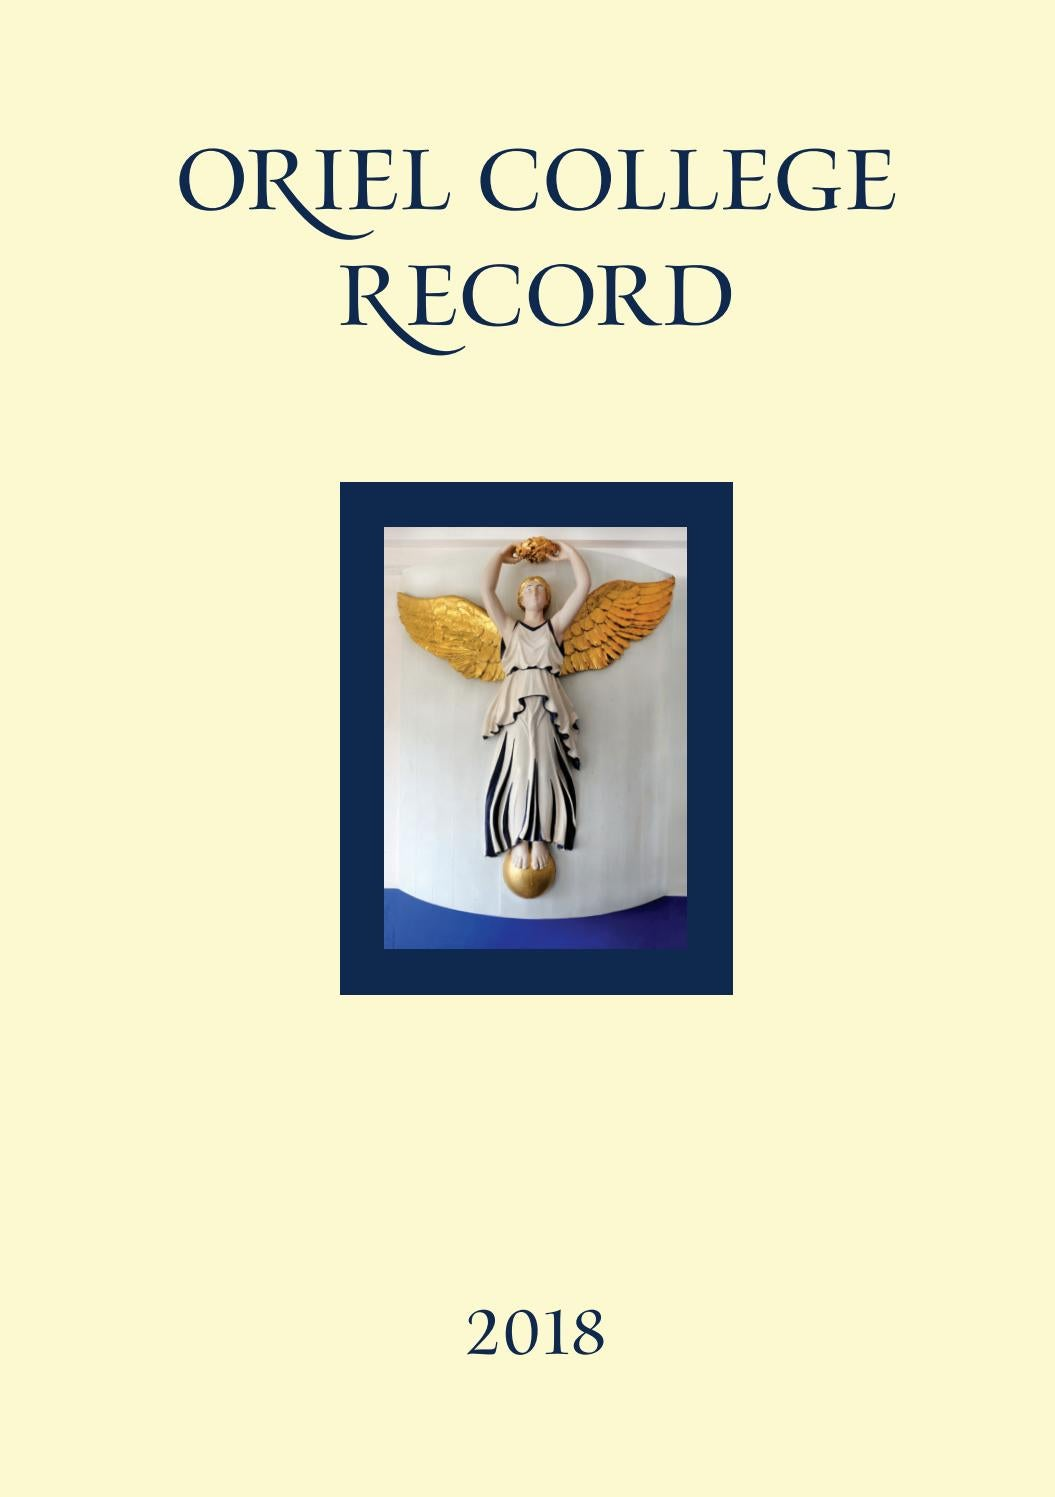 3b3951a5 Oriel College Record 2018 by Oriel College Development Office - issuu